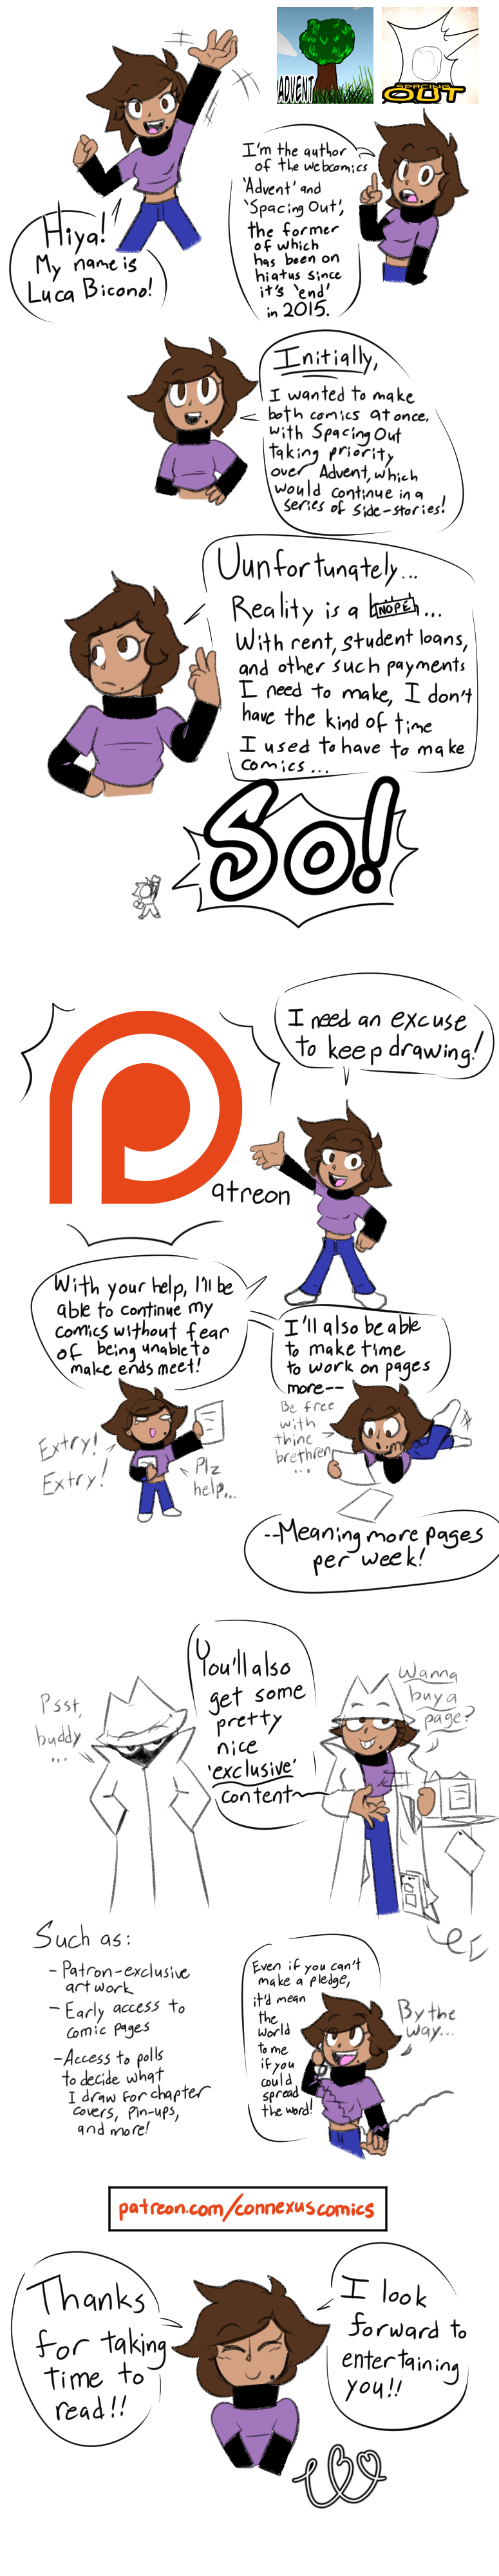 Announcement: Spacing Out Is On Patreon!